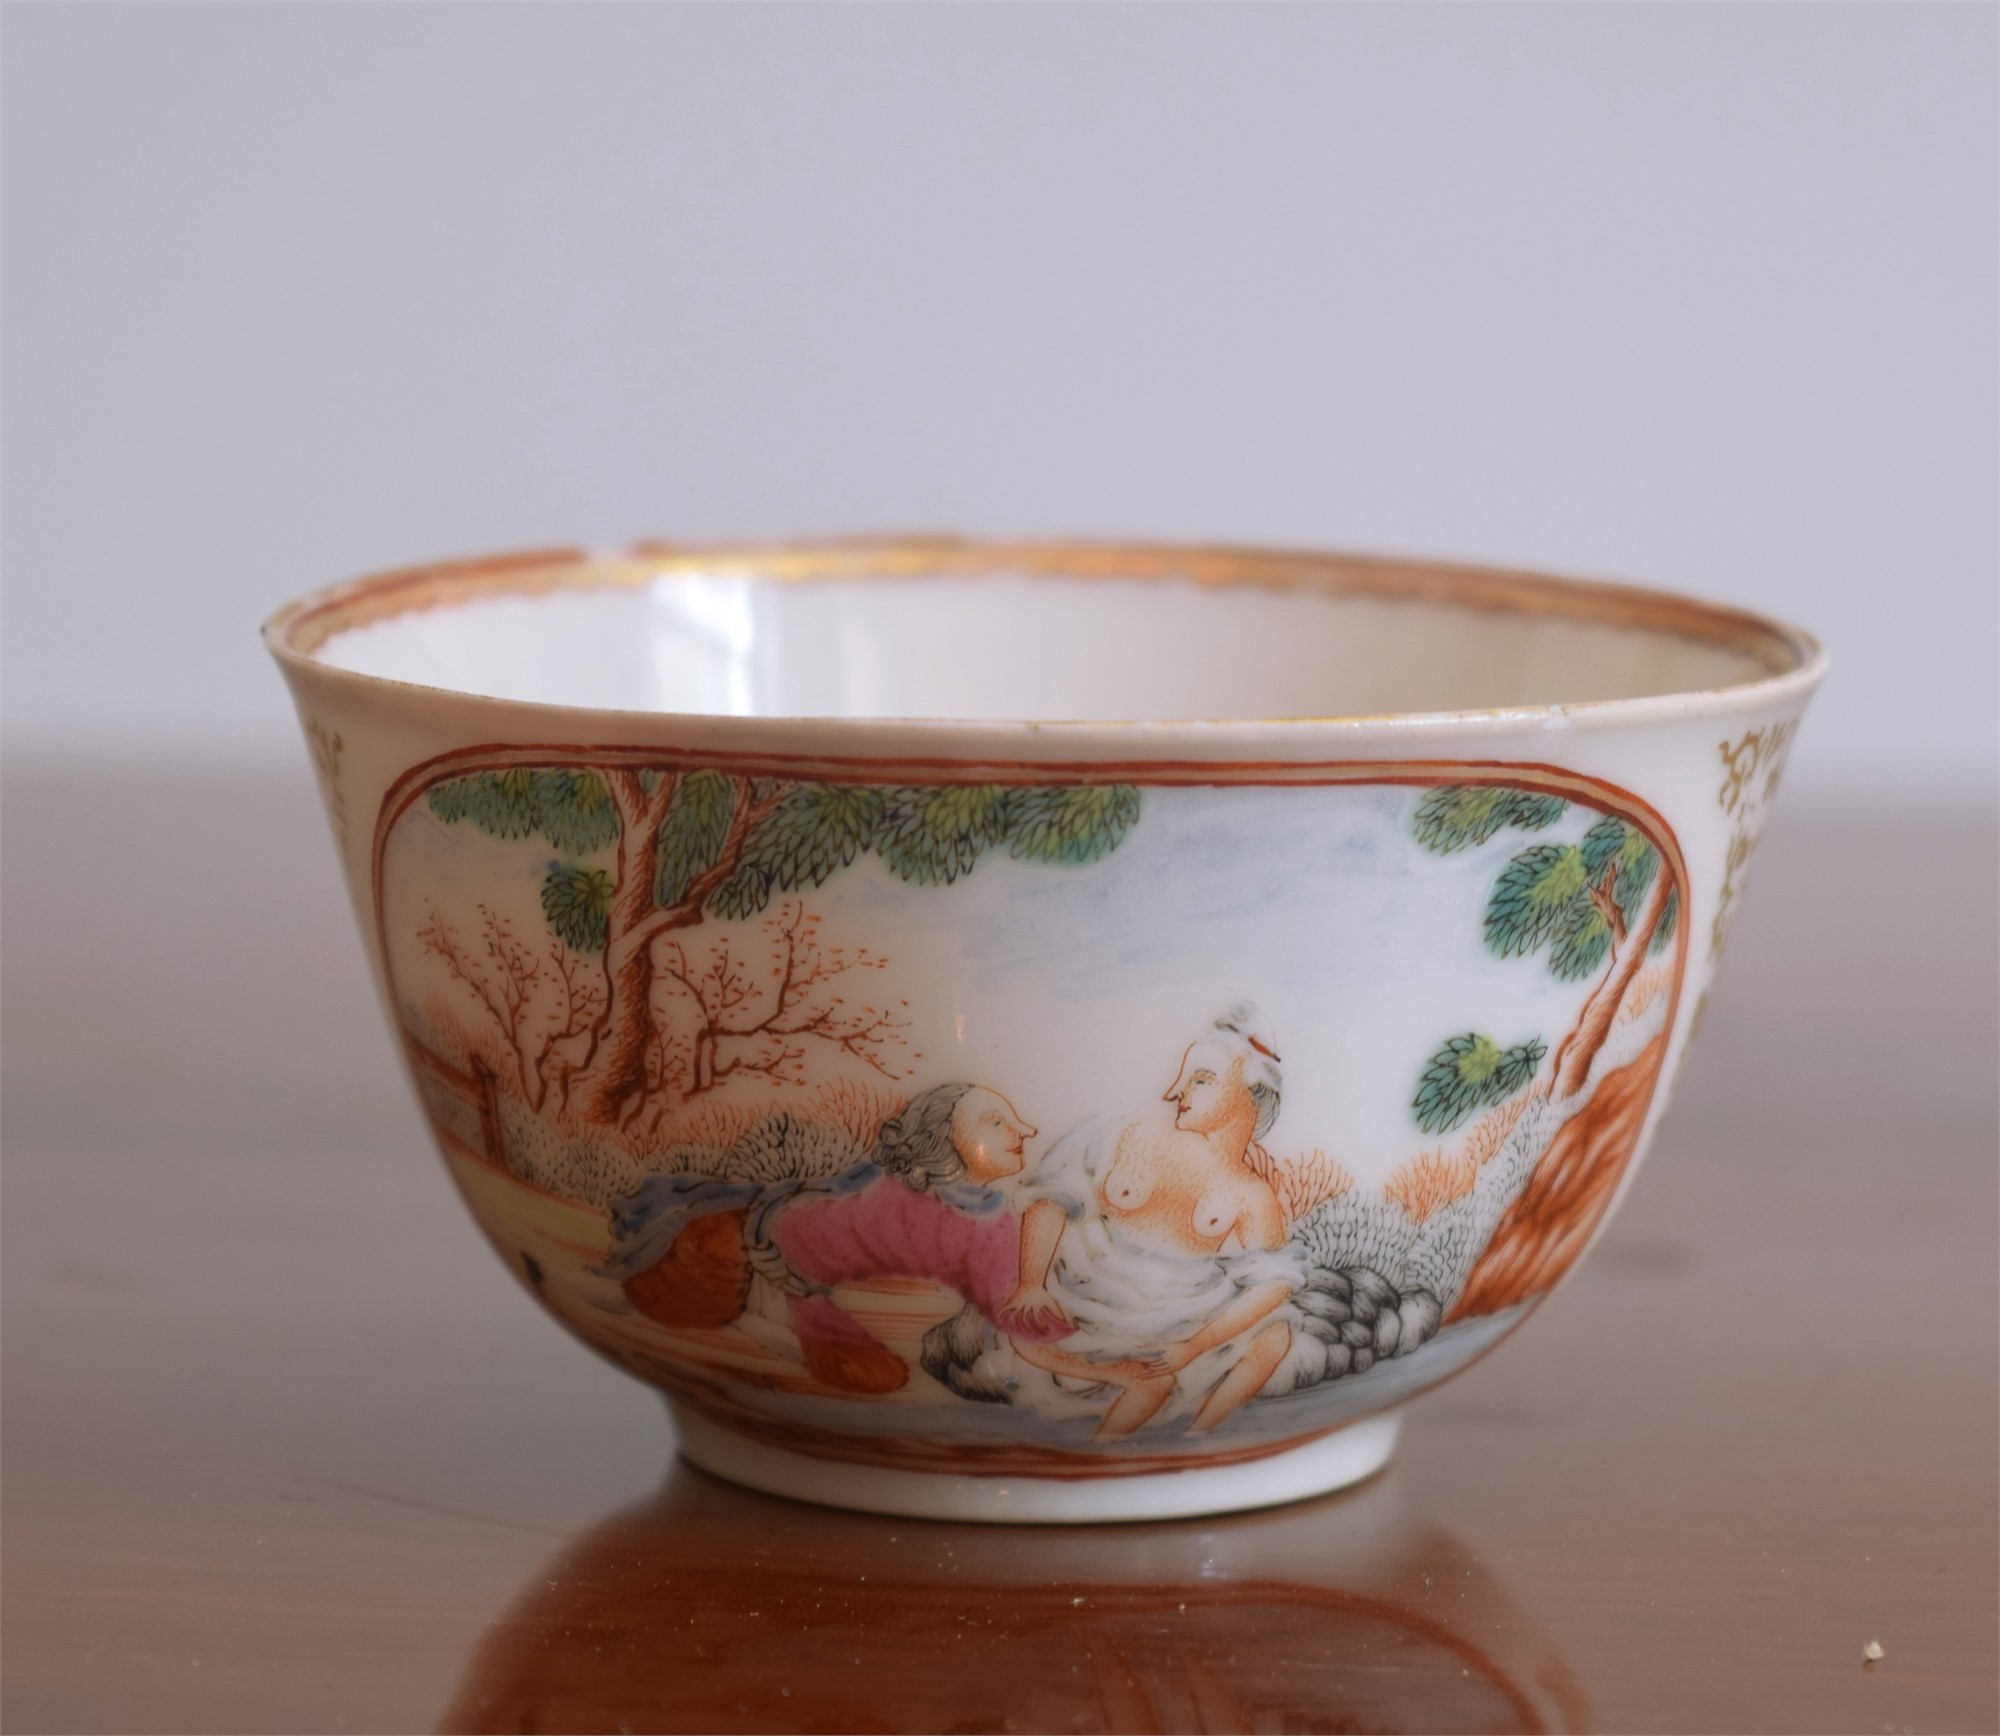 EROTIC DECORATED TEABOWL